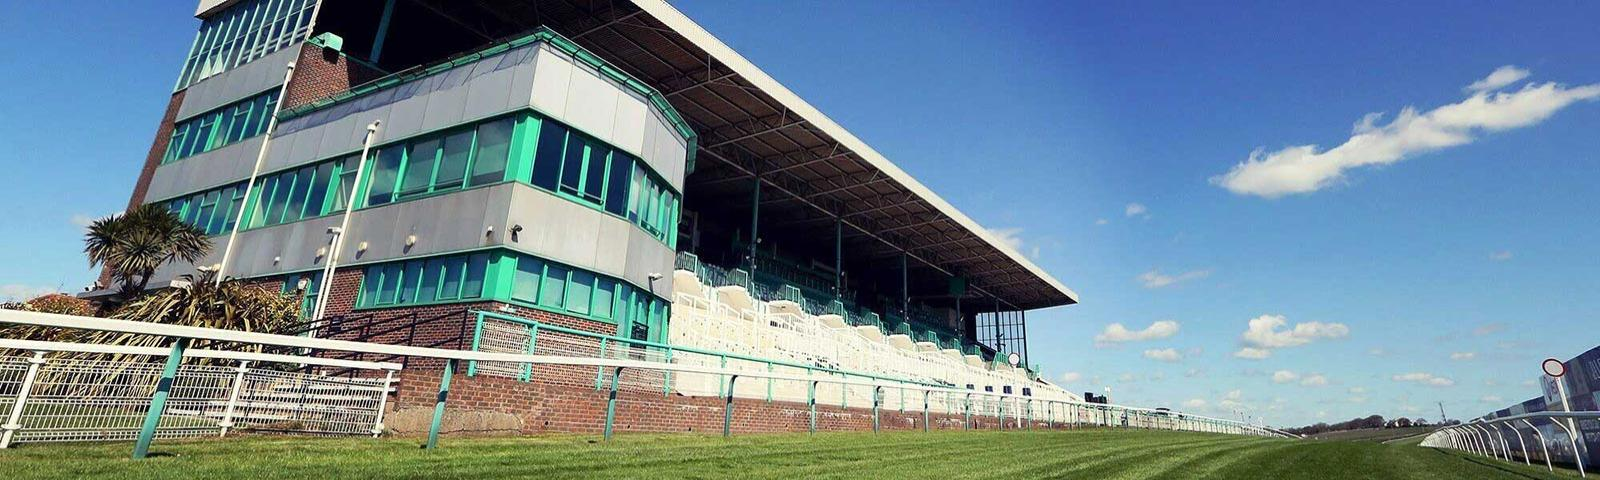 A view of the grandstand at Brighton Racecourse.